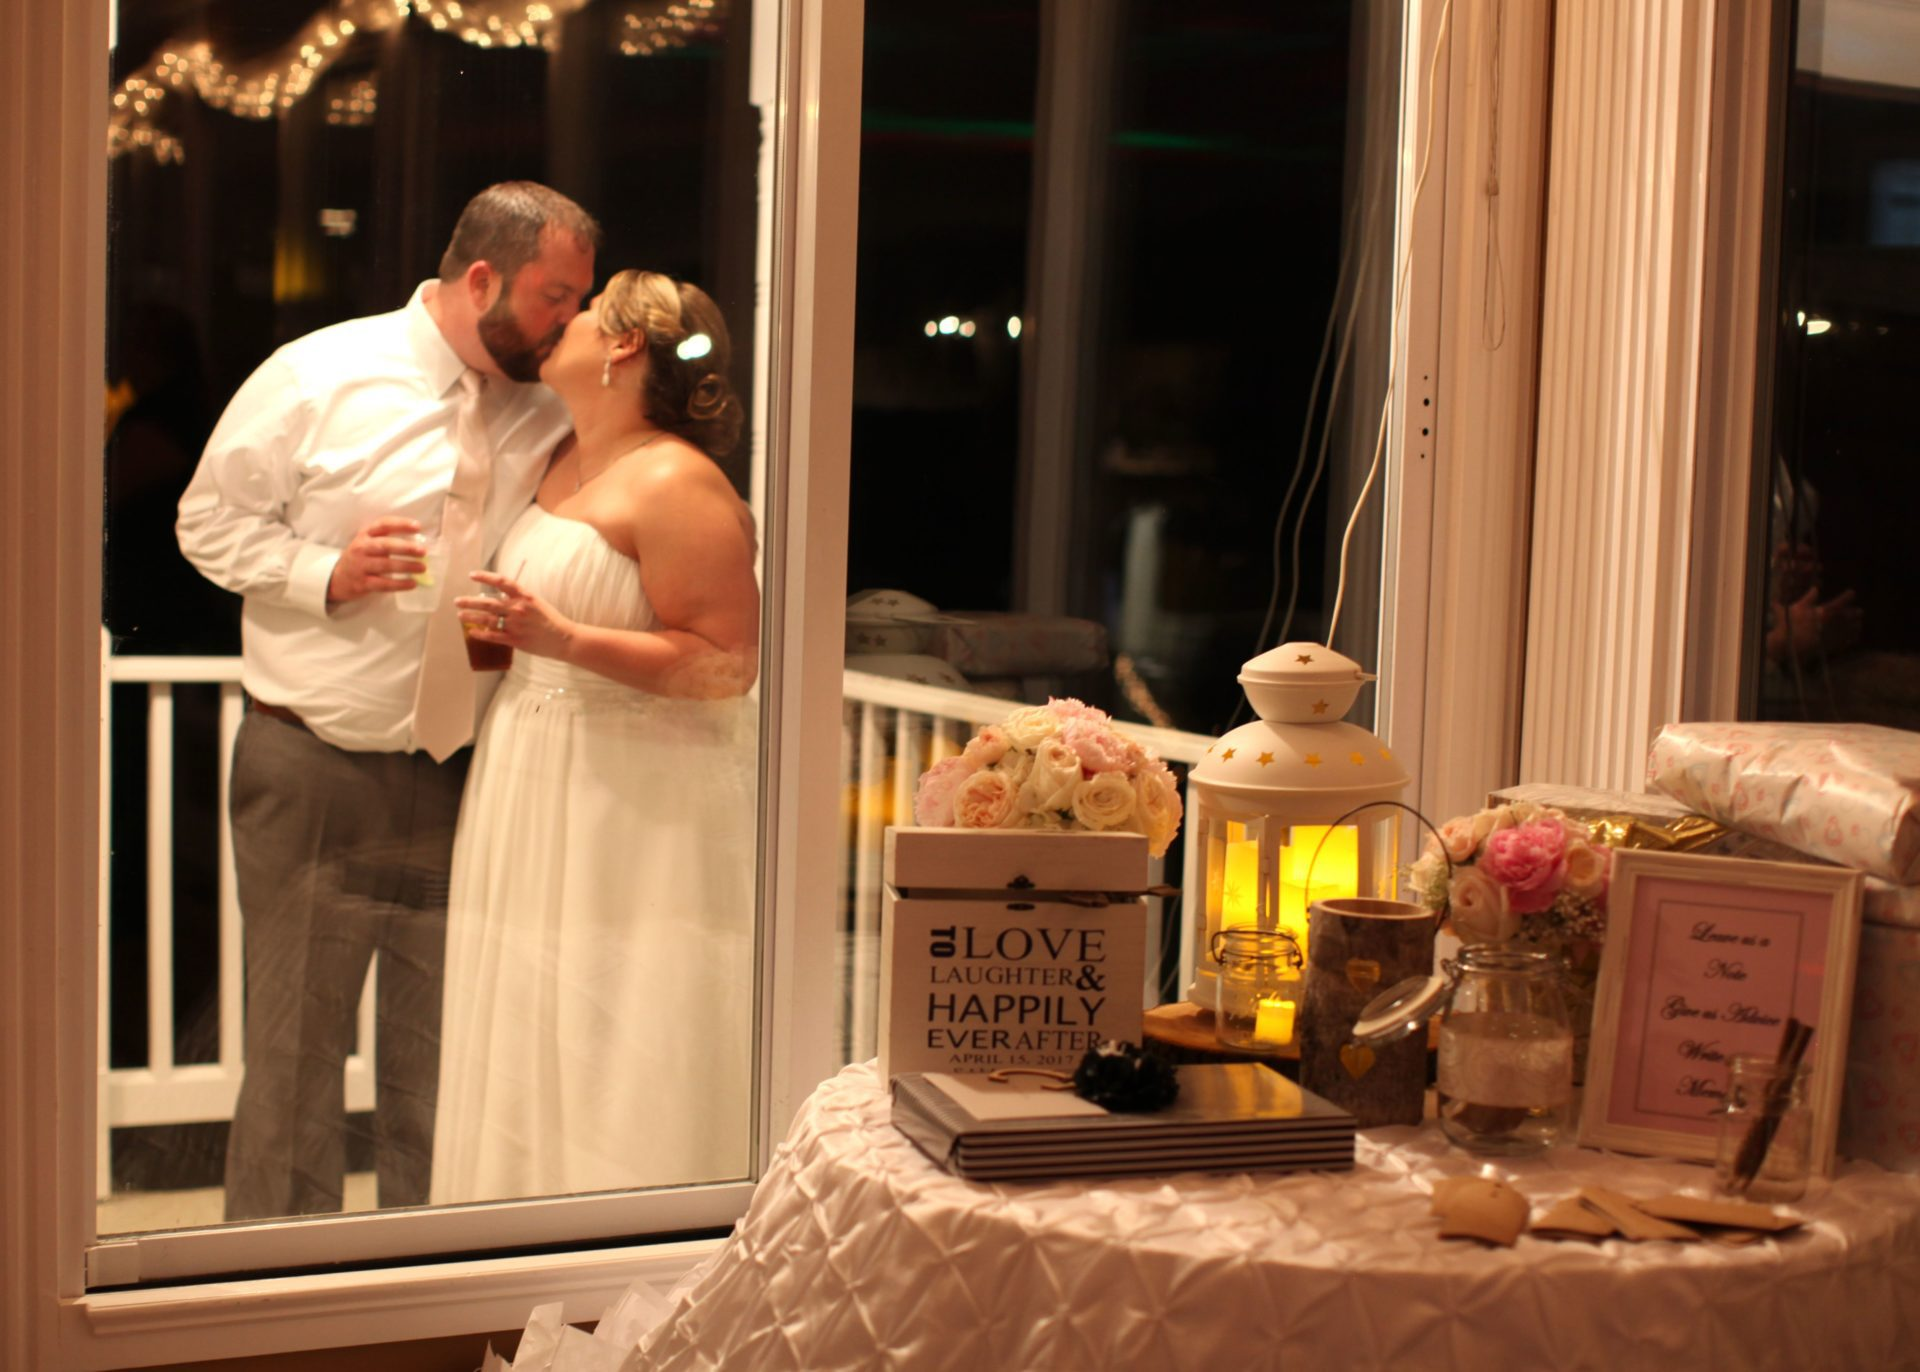 Bride and groom kiss outside reception room window